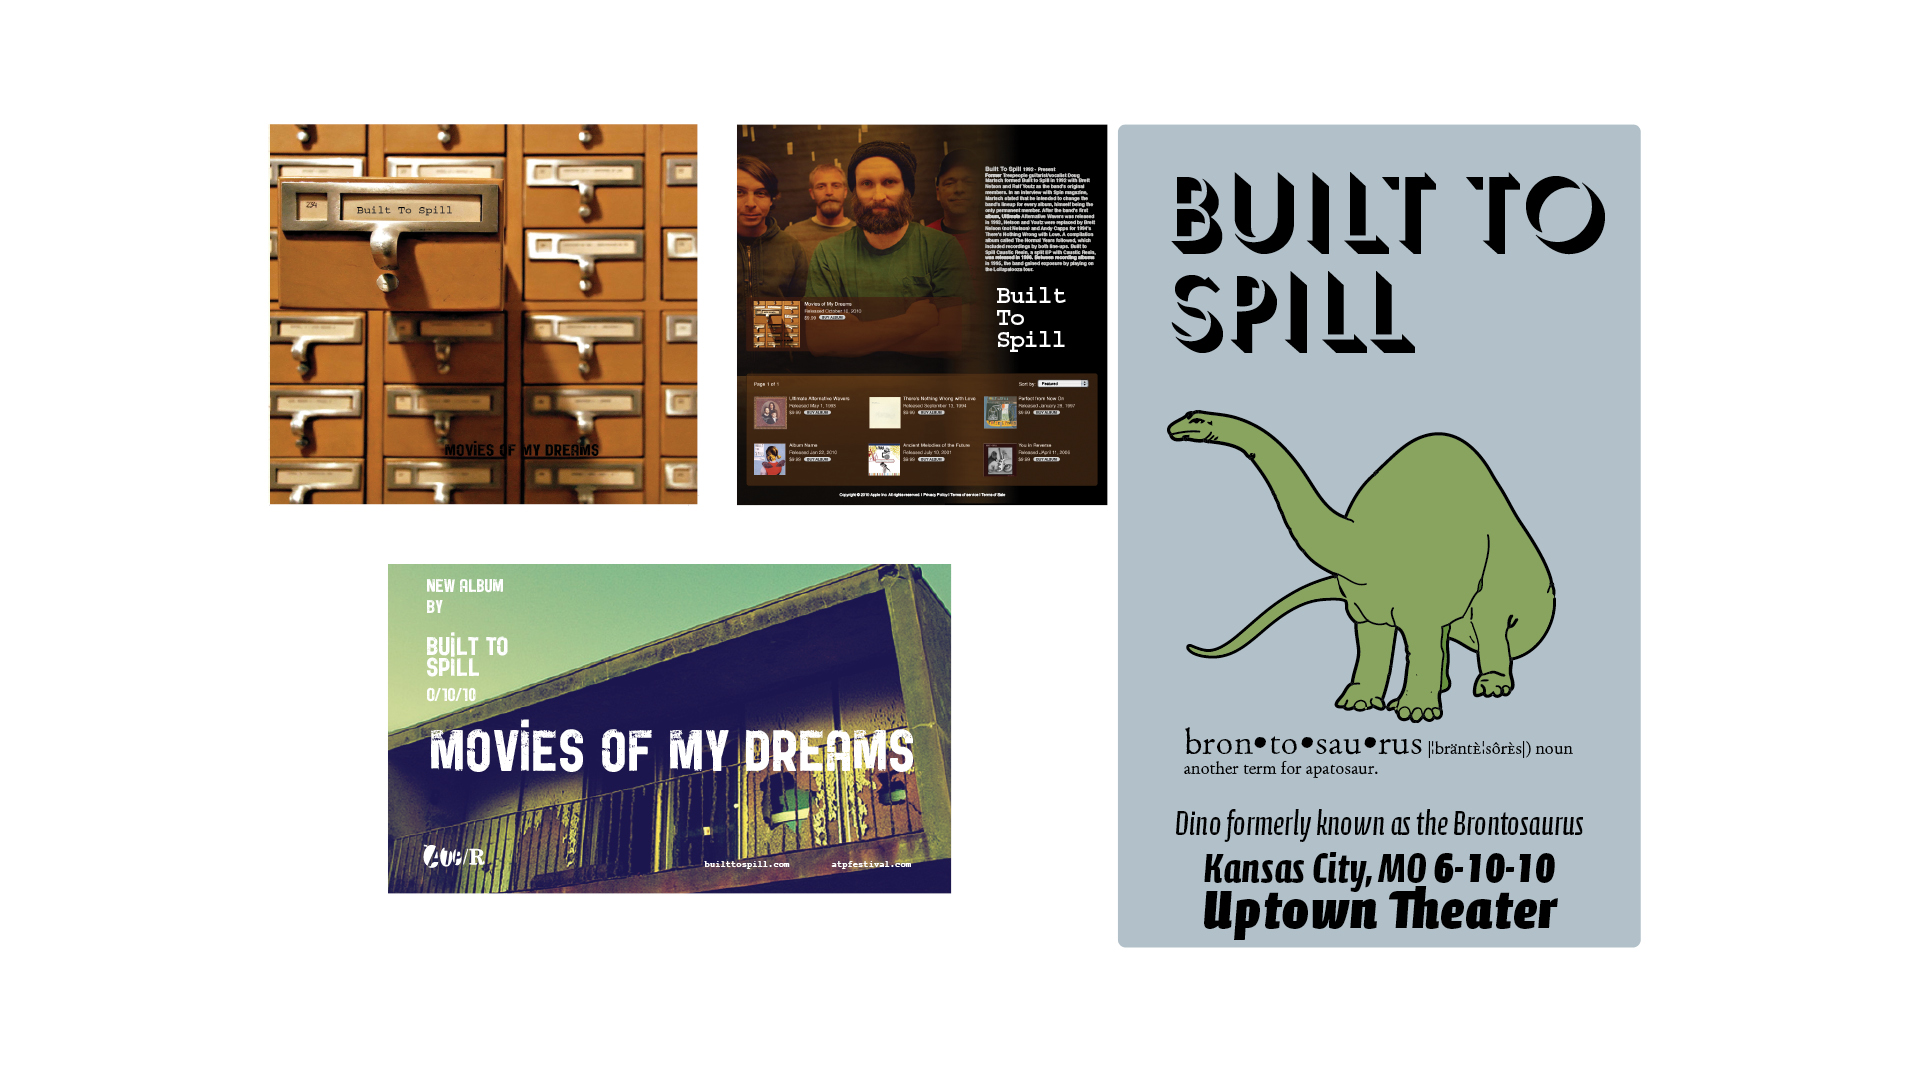 Built To Spill Album and Promotional Materials